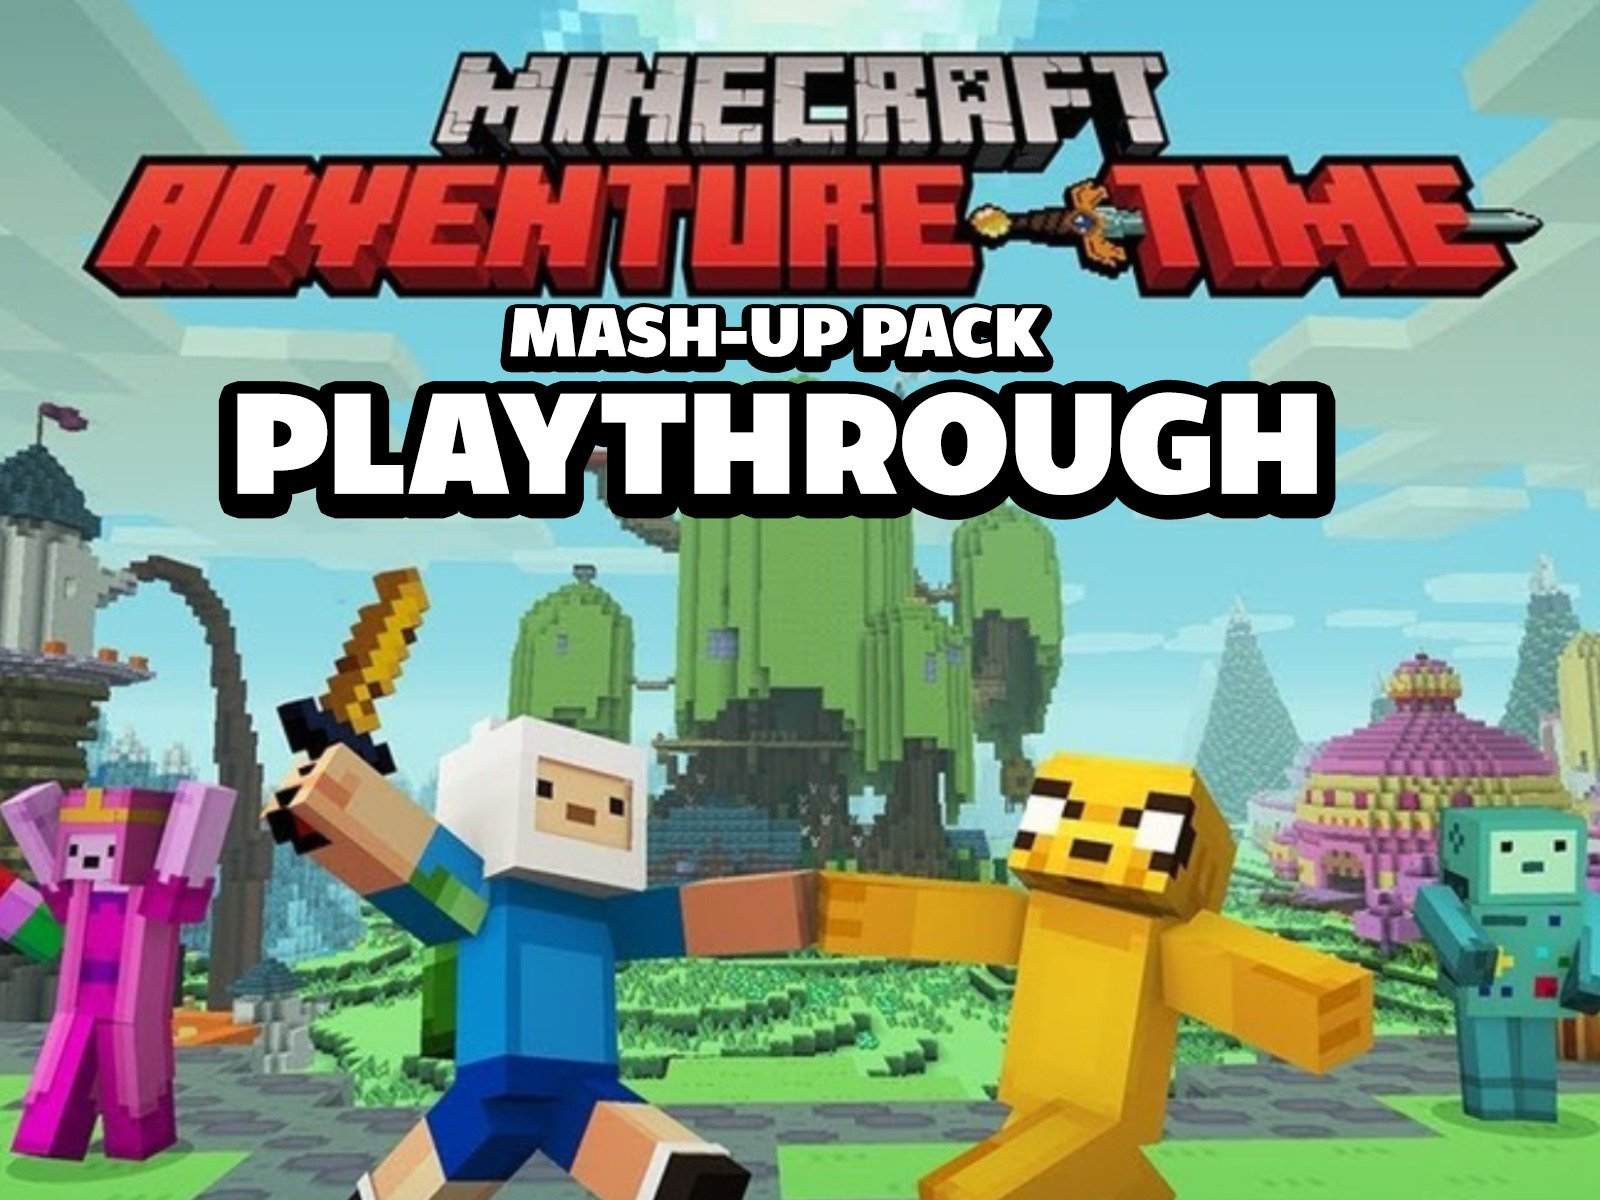 Clip: Minecraft Adventure Time Mash-Up Pack Playthrough - Season 1